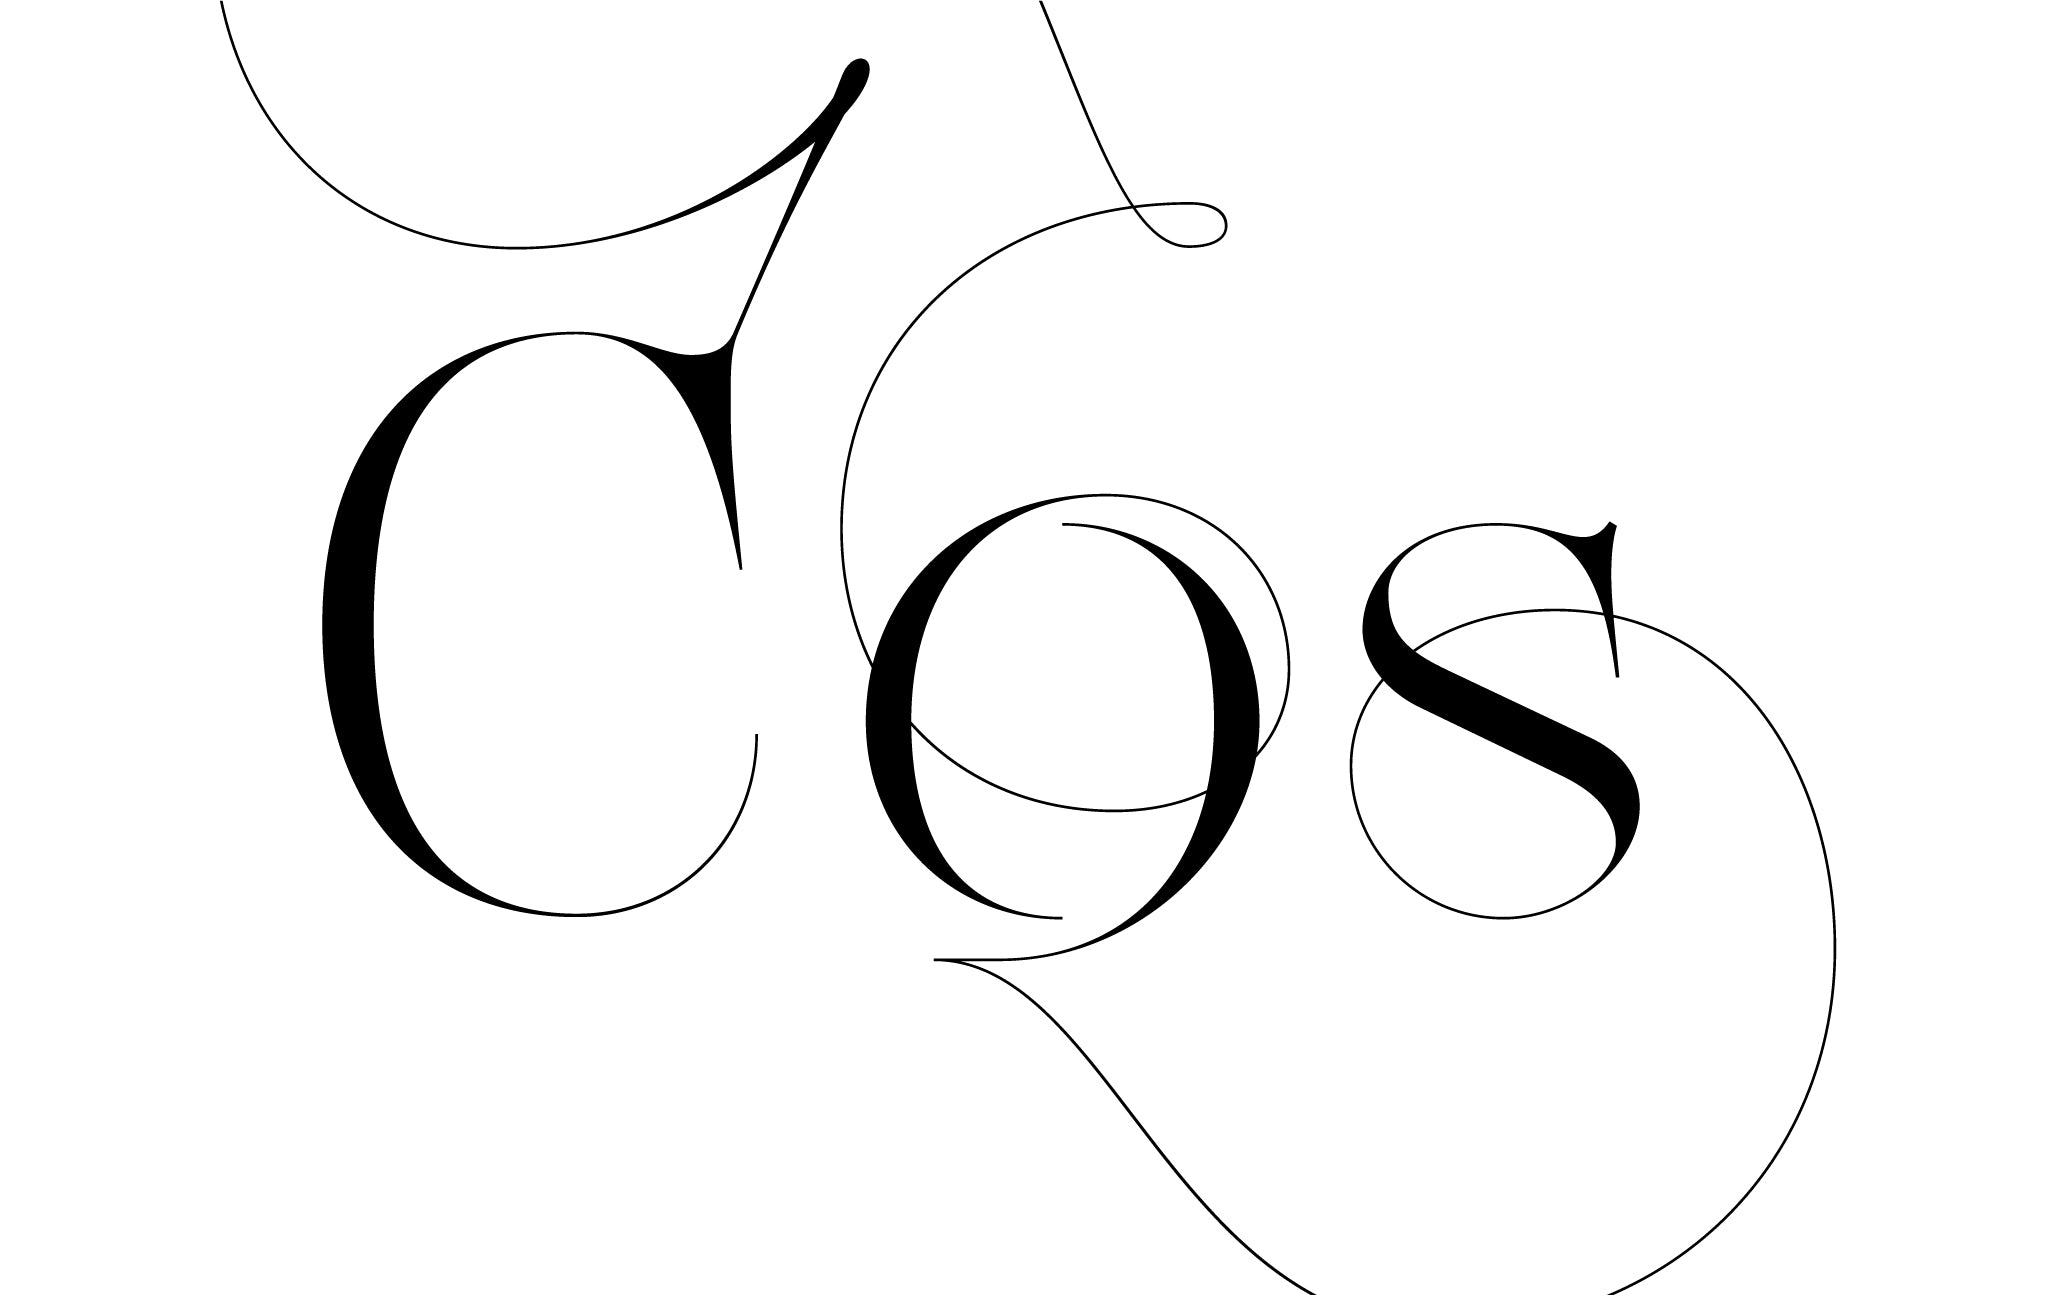 Lingerie XO Sexy Ligatures by Moshik Nadav Typography - COS